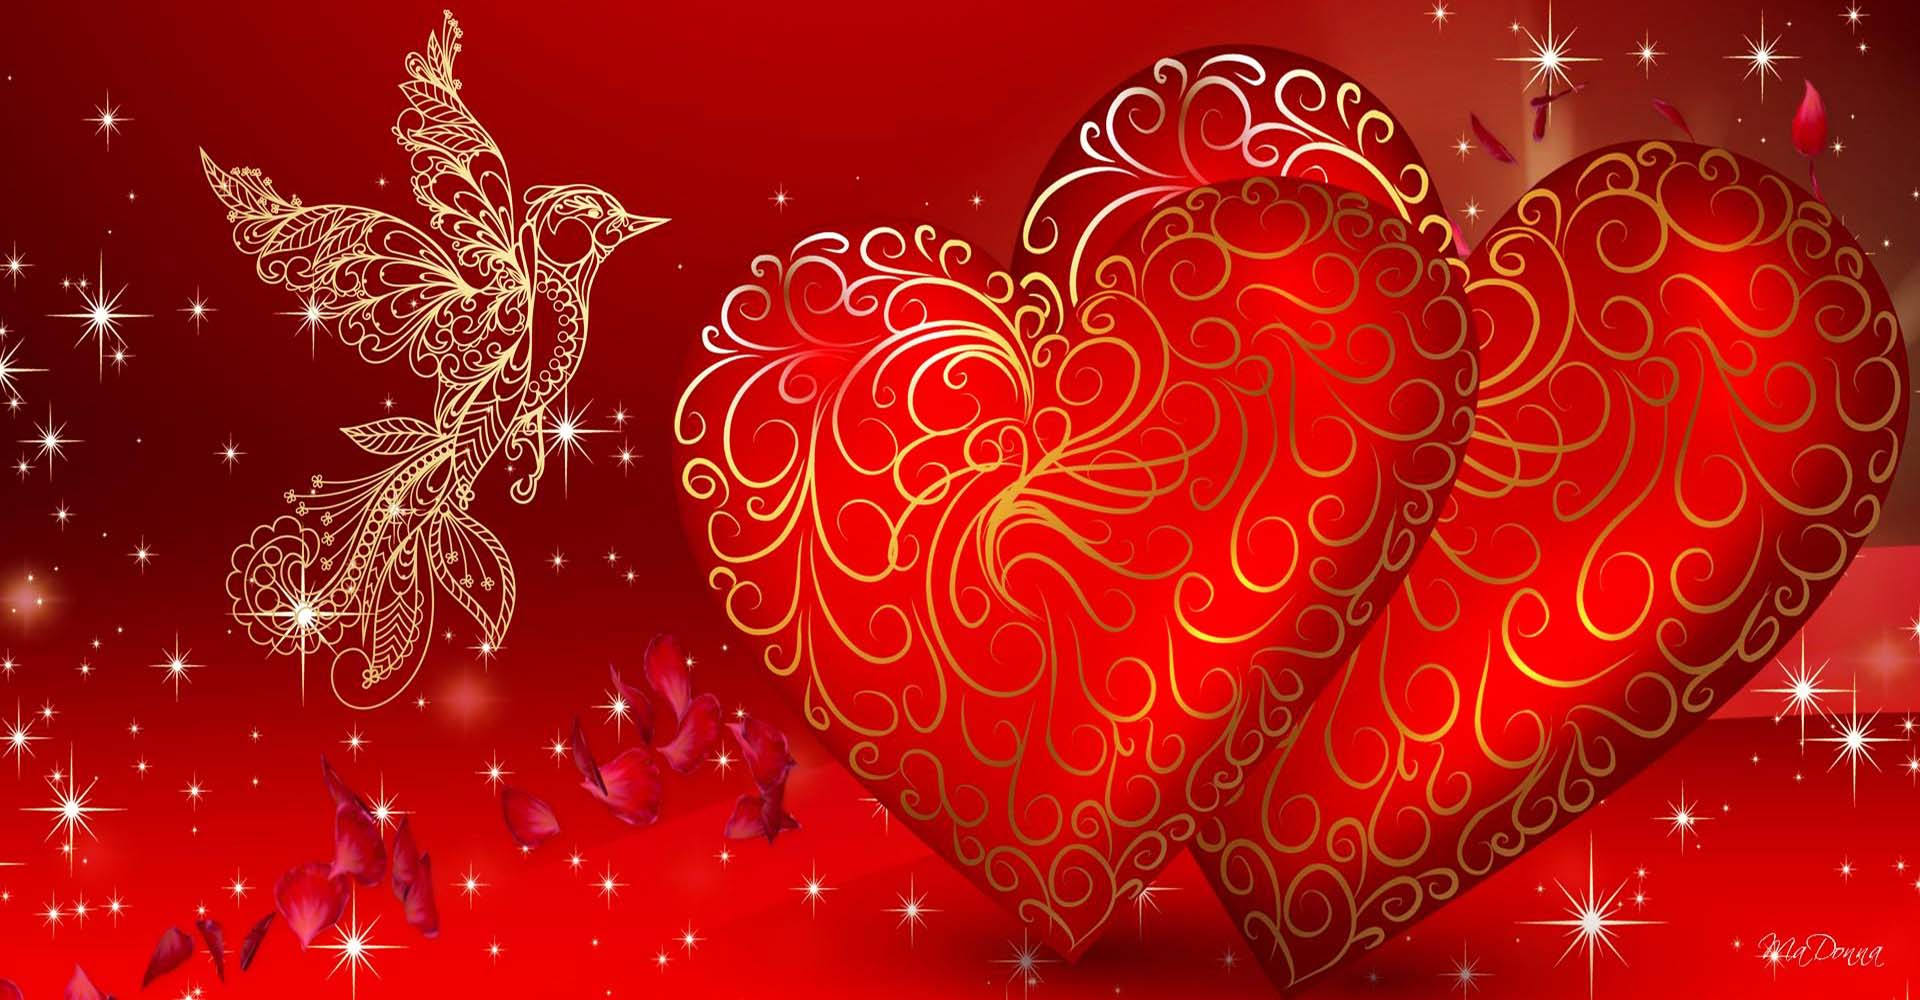 love heart wallpapers hd wallpaper 1920x1000